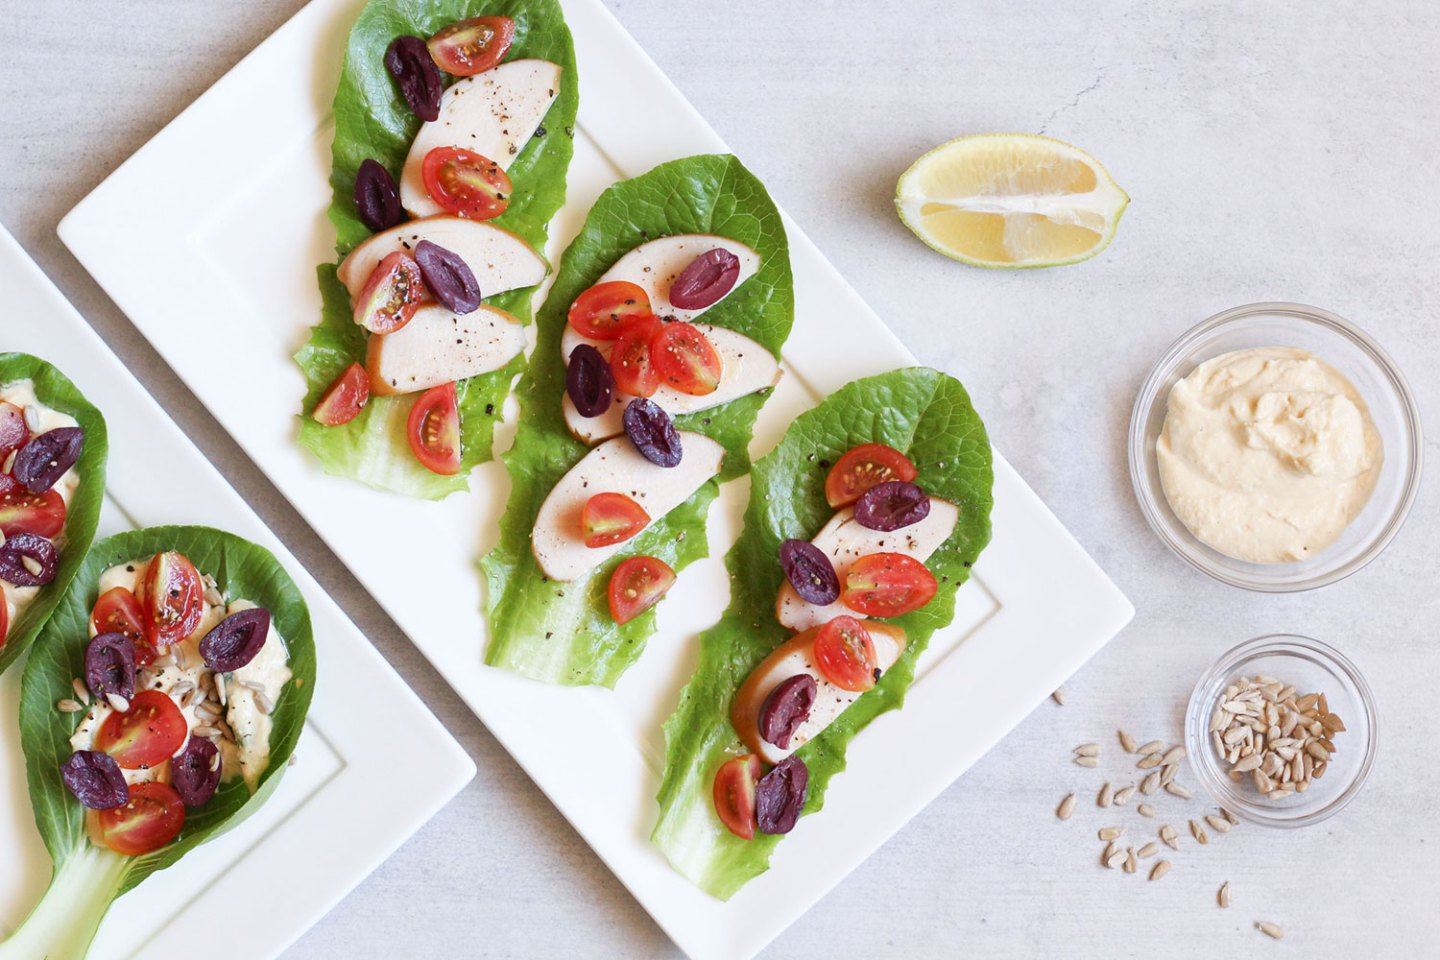 How To Make Salad Wraps (Easy Lunch Idea)